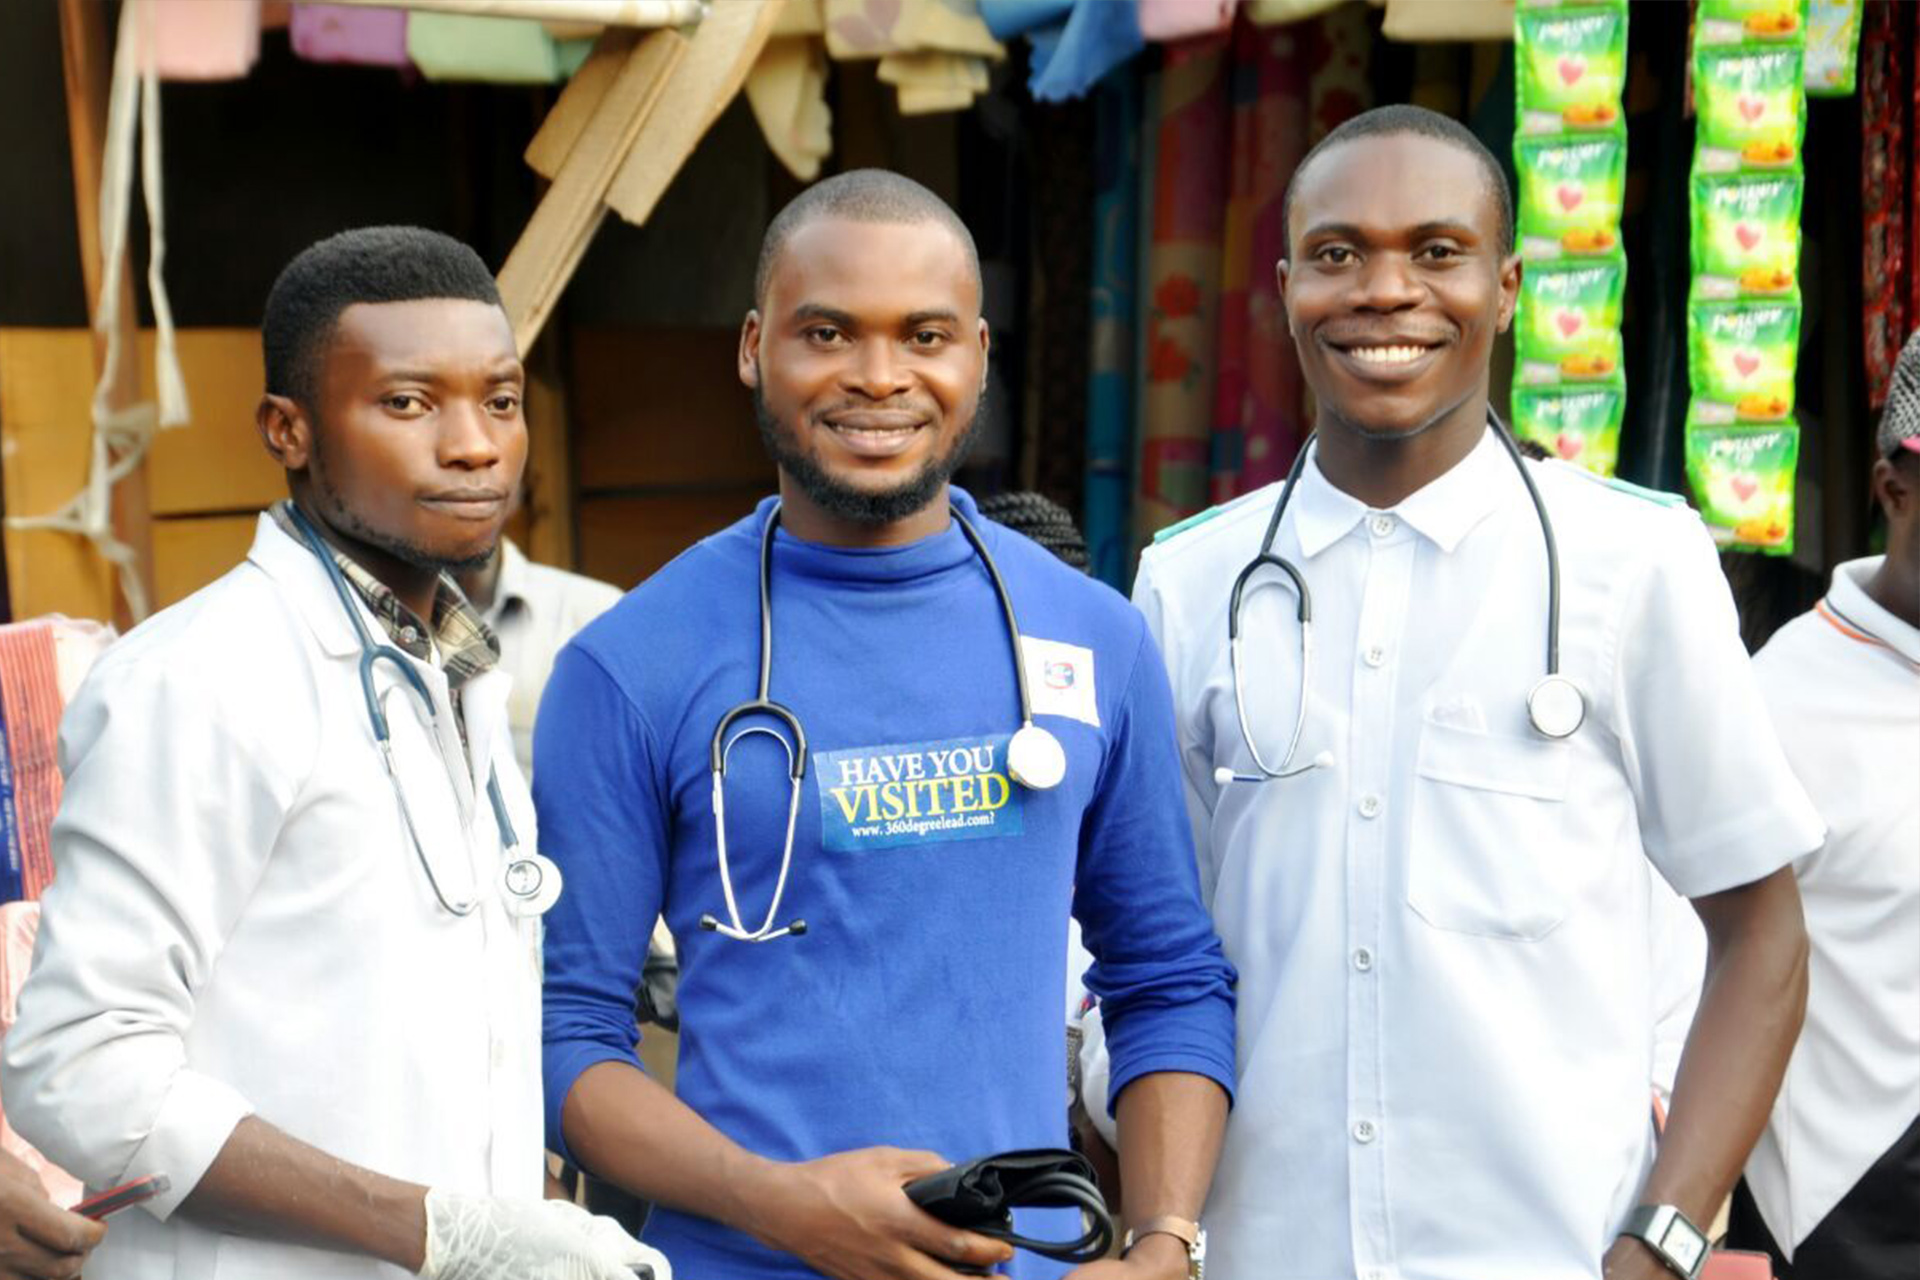 Victor Eze with members of 360degreeHEALTH NETwork Nigeria